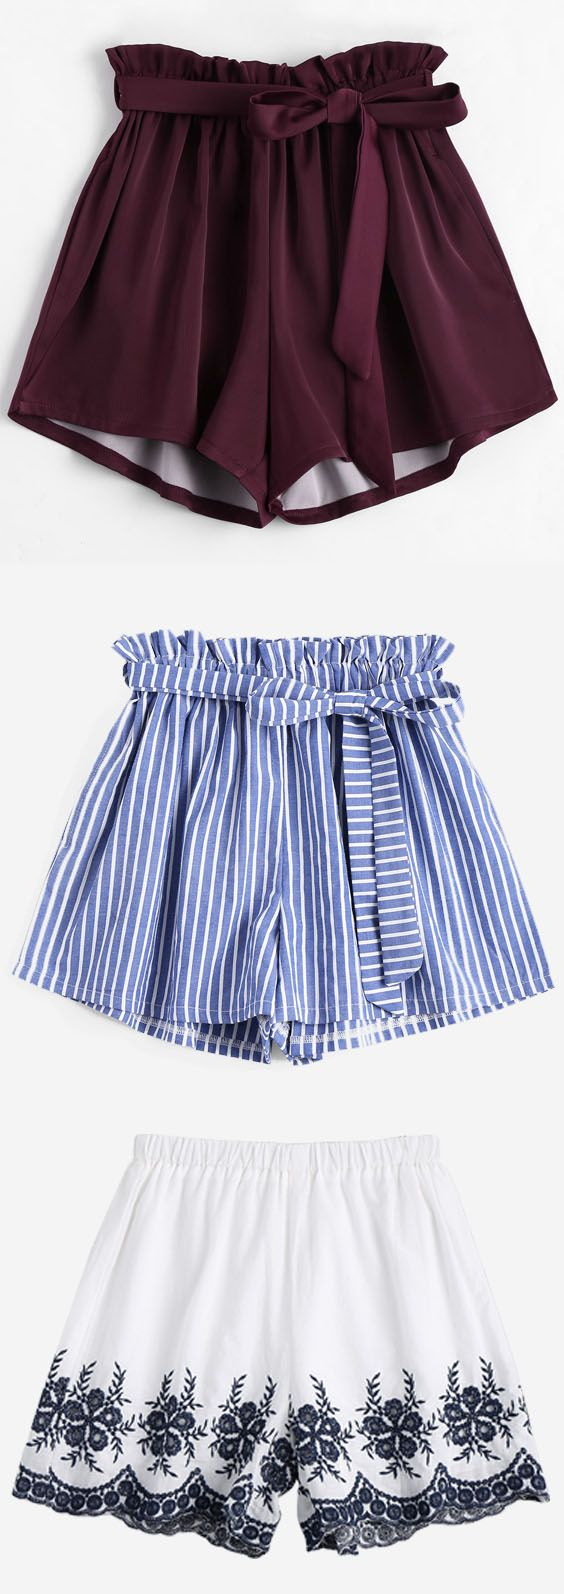 Back to school, back to saving! Free shipping worldwide! Belted Smocked Striped High Waisted Shorts. Zaful, zaful.com, bottoms,shorts,shorts outfits,shorts and tights,shorts outfits women,denim,denim shorts,women shorts,high waisted shorts, jean shorts, boyfriend shorts, dressy shorts, ripped jean shorts, womens khaki shorts, cut off jean shorts, knee length shorts. @zaful Extra 10% OFF Code:ZF2017